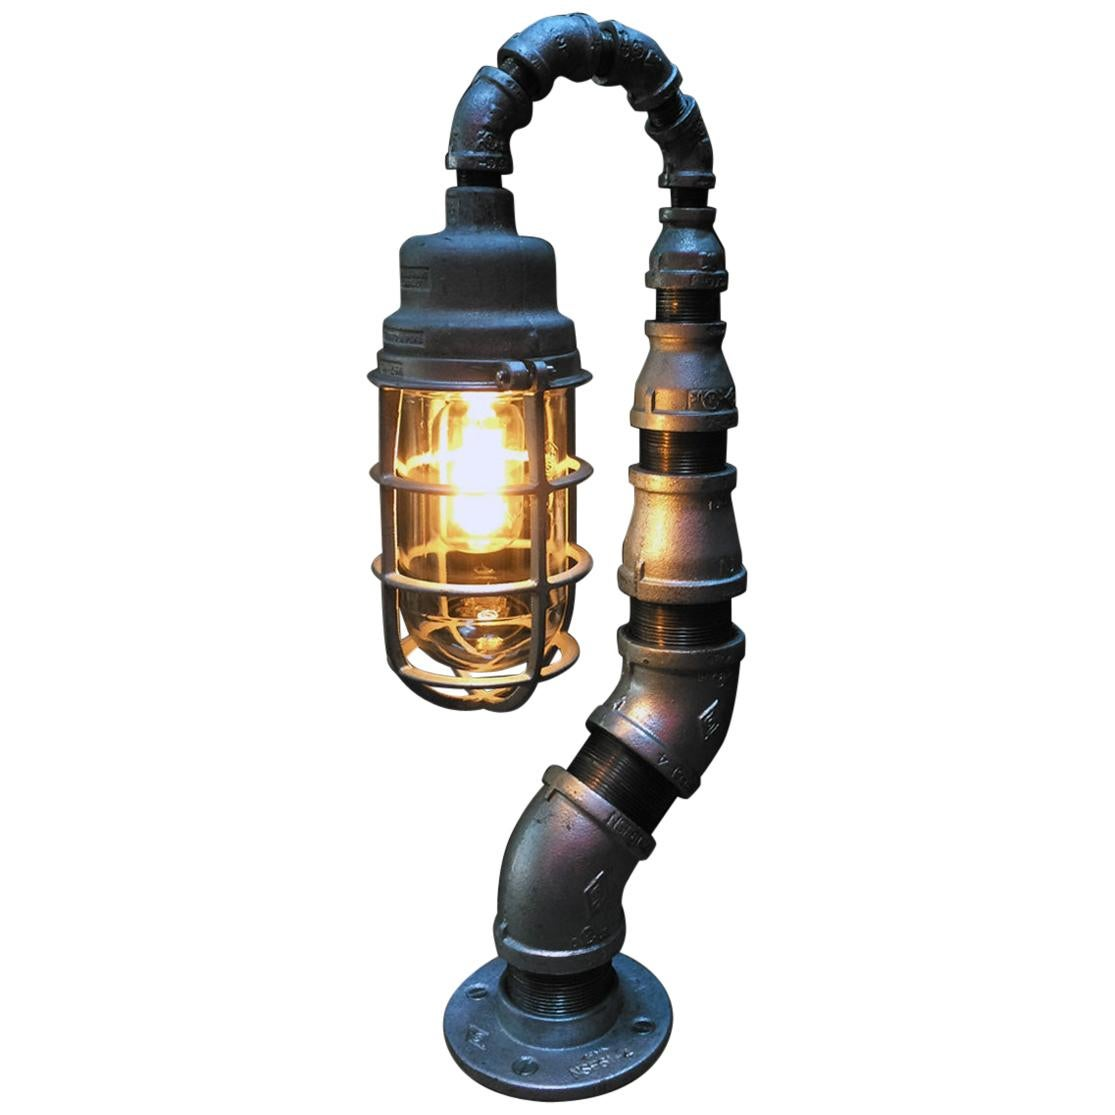 Industrial Modern Table Lamp, Antique Crouse Hinds, USA Pandemic Design Studio